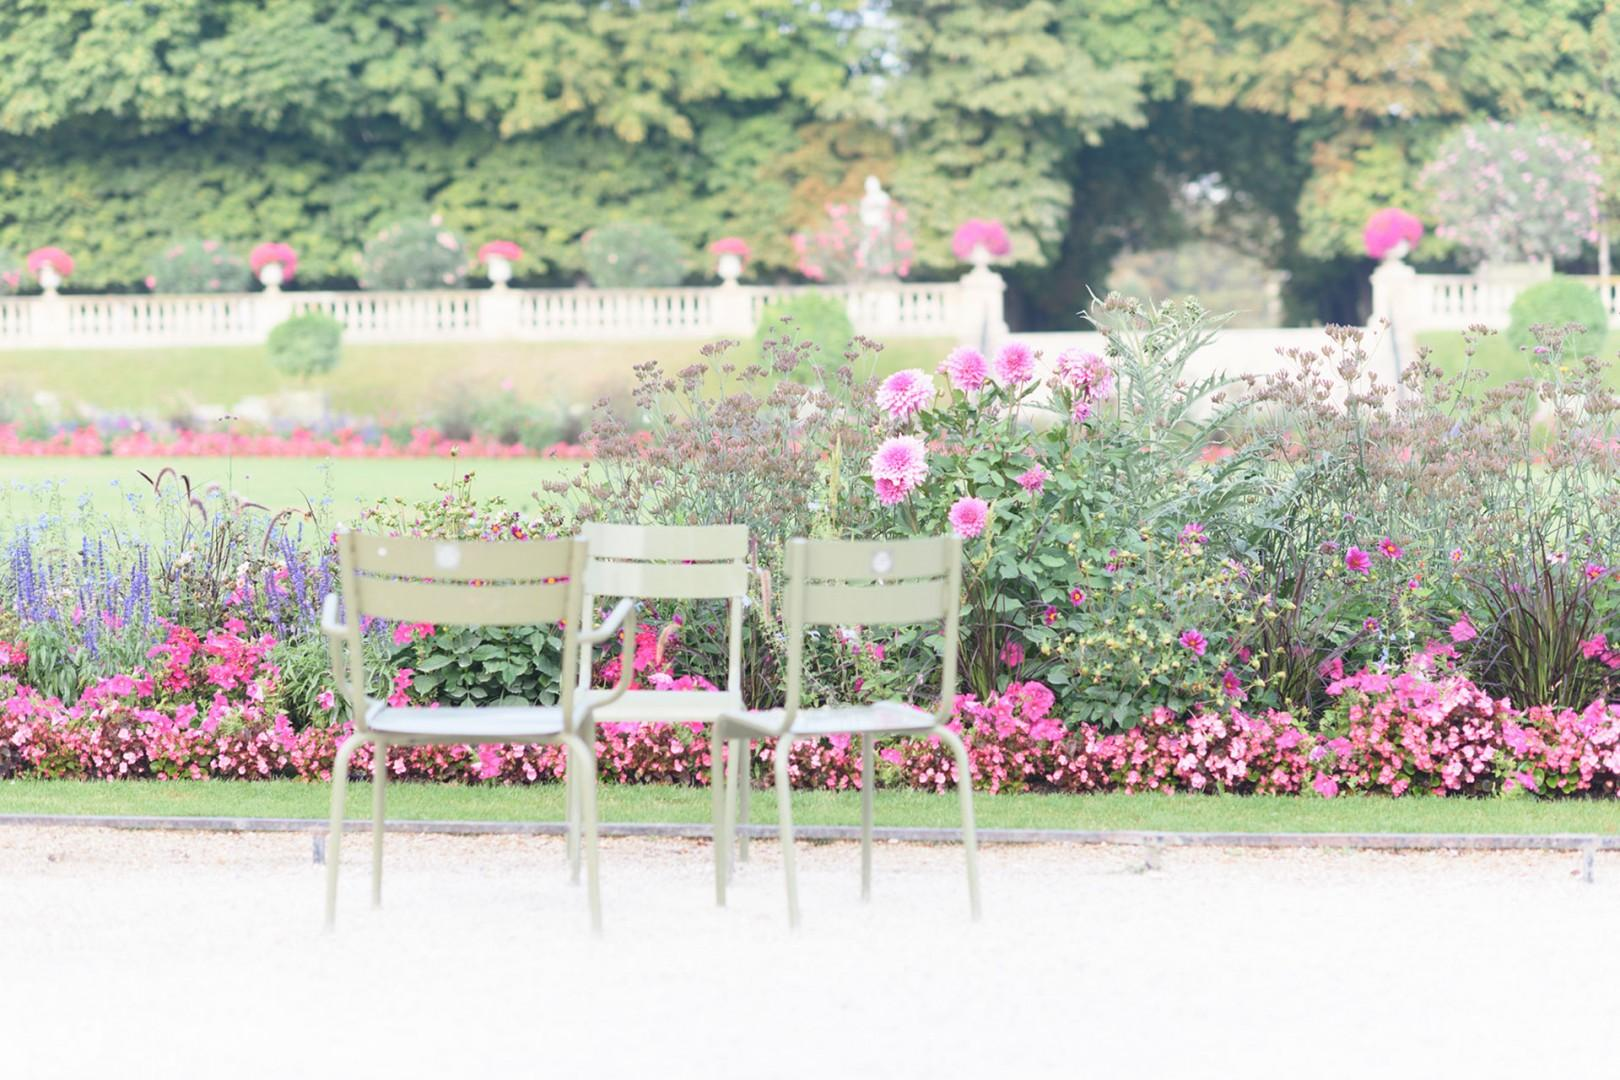 Relax in the peaceful Luxembourg Gardens, just minutes from the apartment.